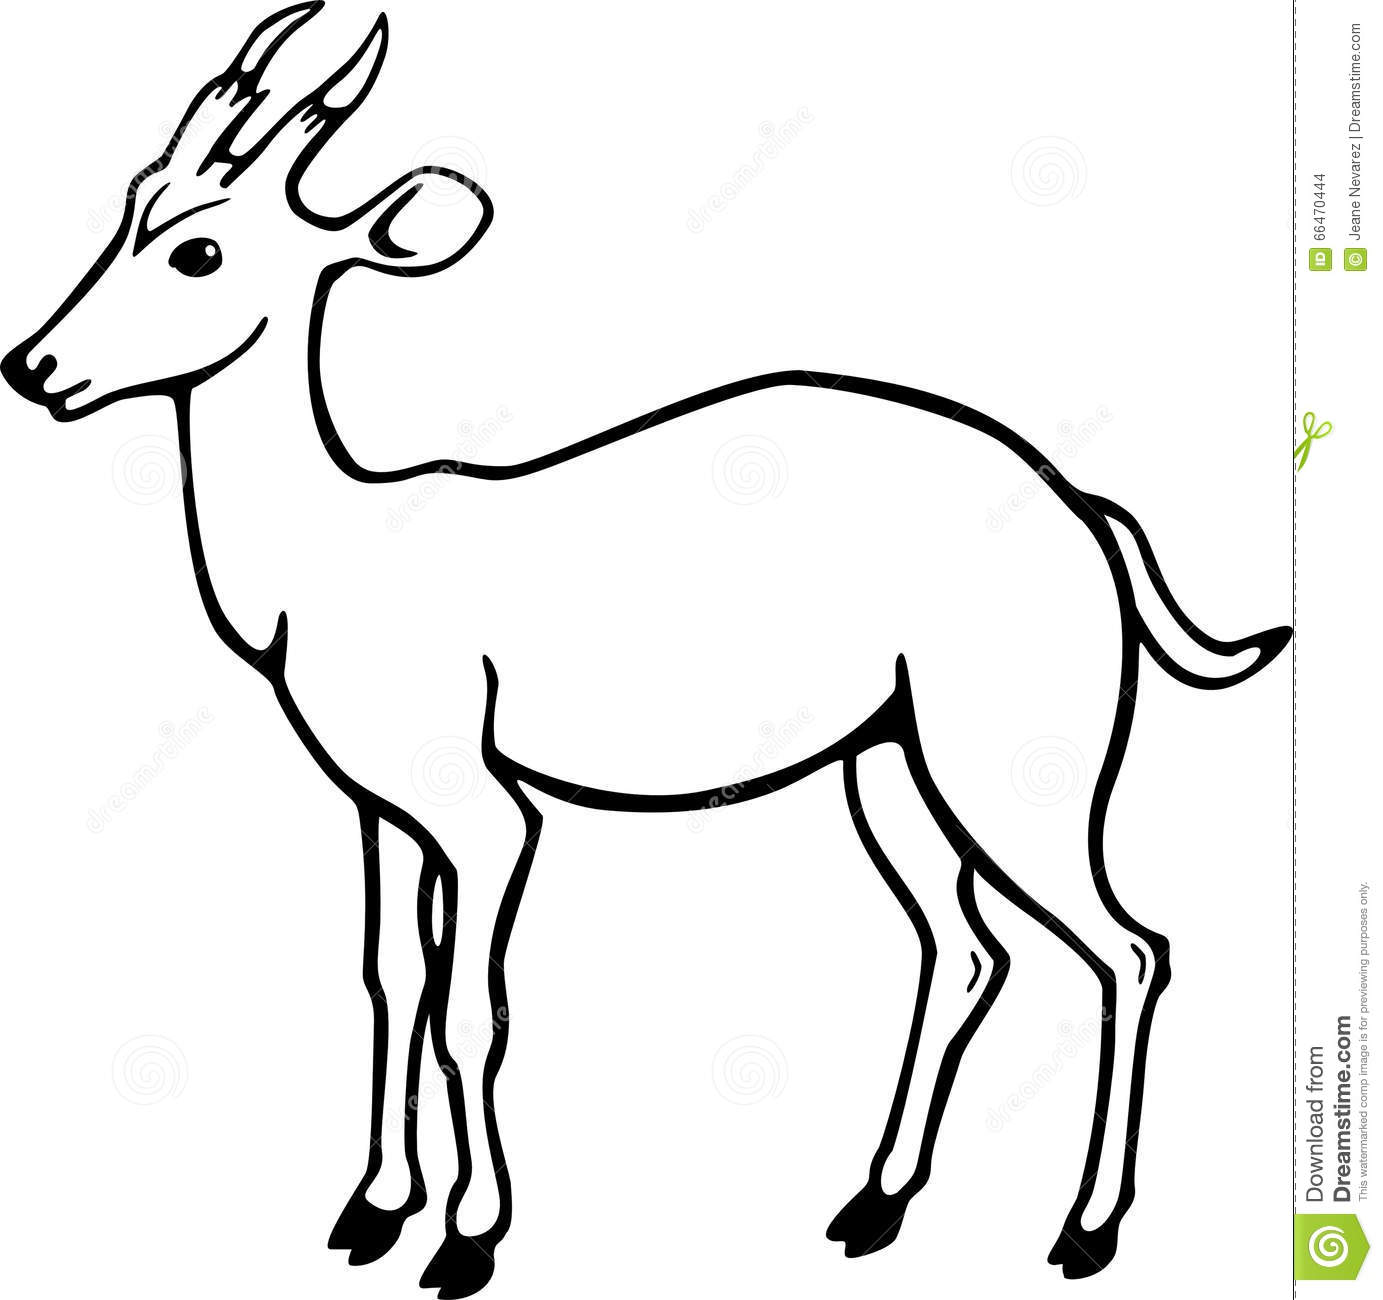 Figure1 additionally Tree likewise Stock Illustration Muntjac Line Drawing Barking Deer Eps File Pending Image66470444 also Black And White Map Symbols Overland 2 374809859 besides 222232711926. on art forest